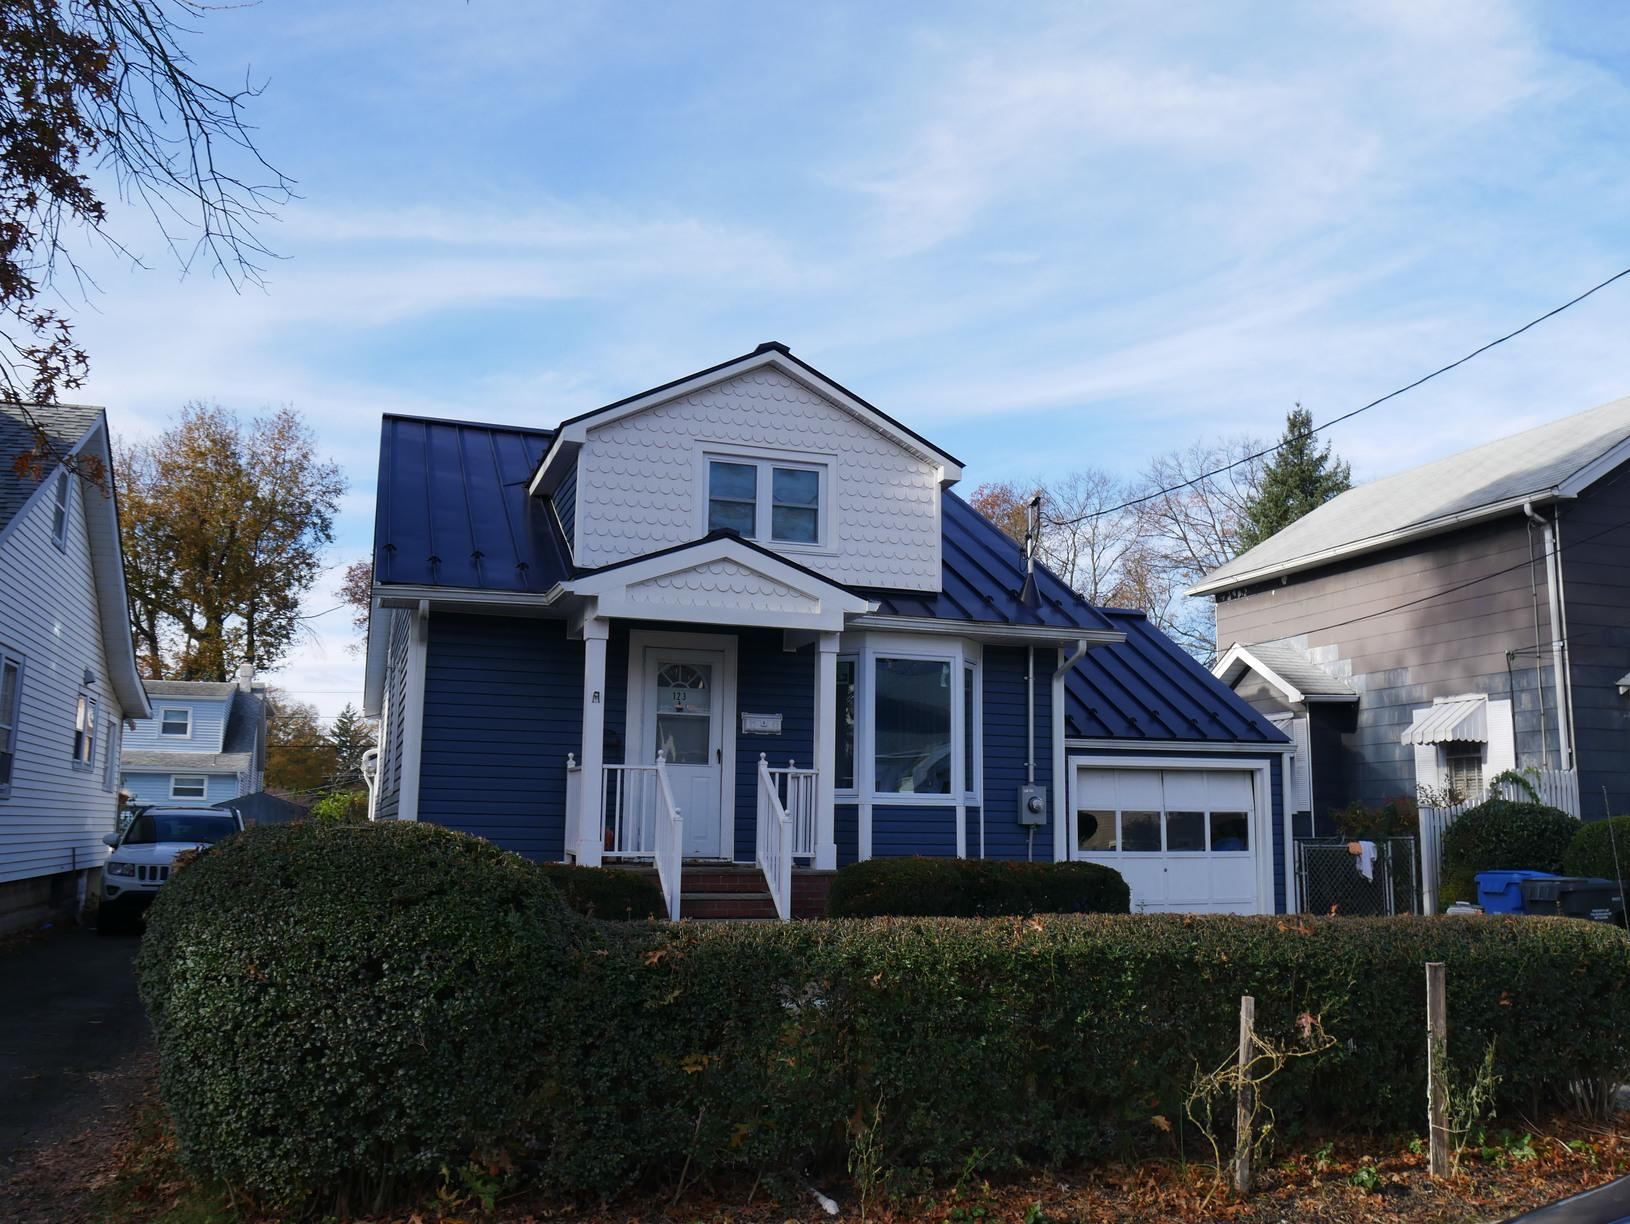 Charcoal Grey Standing Seam Metal Roof On Cape Cod Style Home in NJ